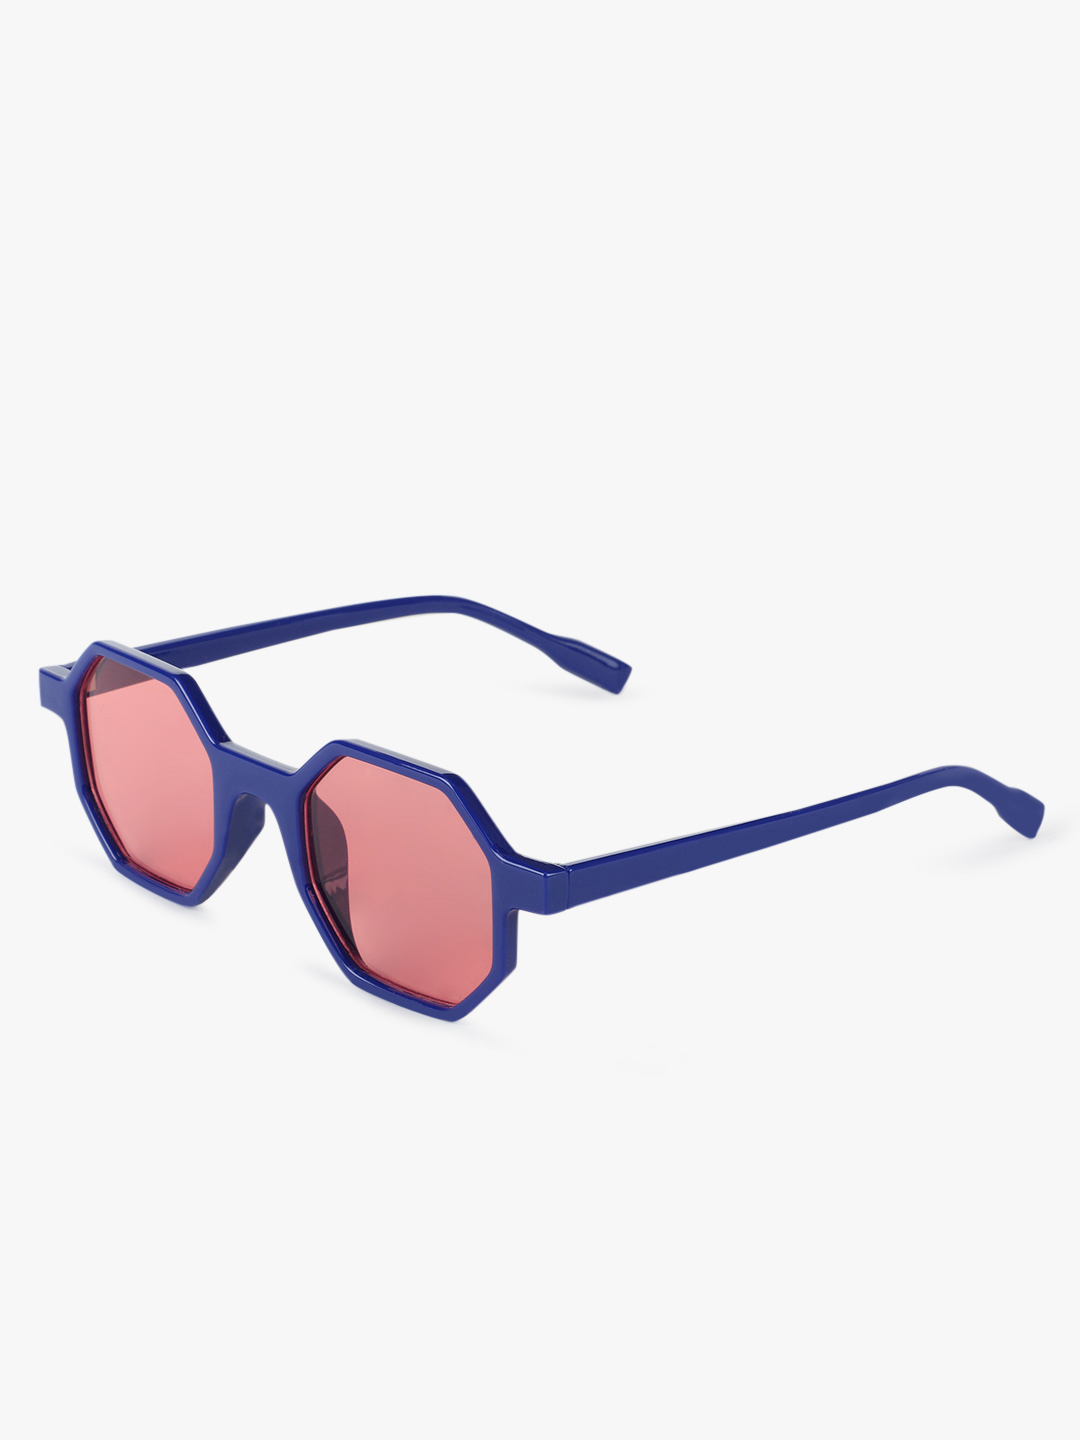 Pataaka Multi Coloured Lens Retro Sunglasses 1